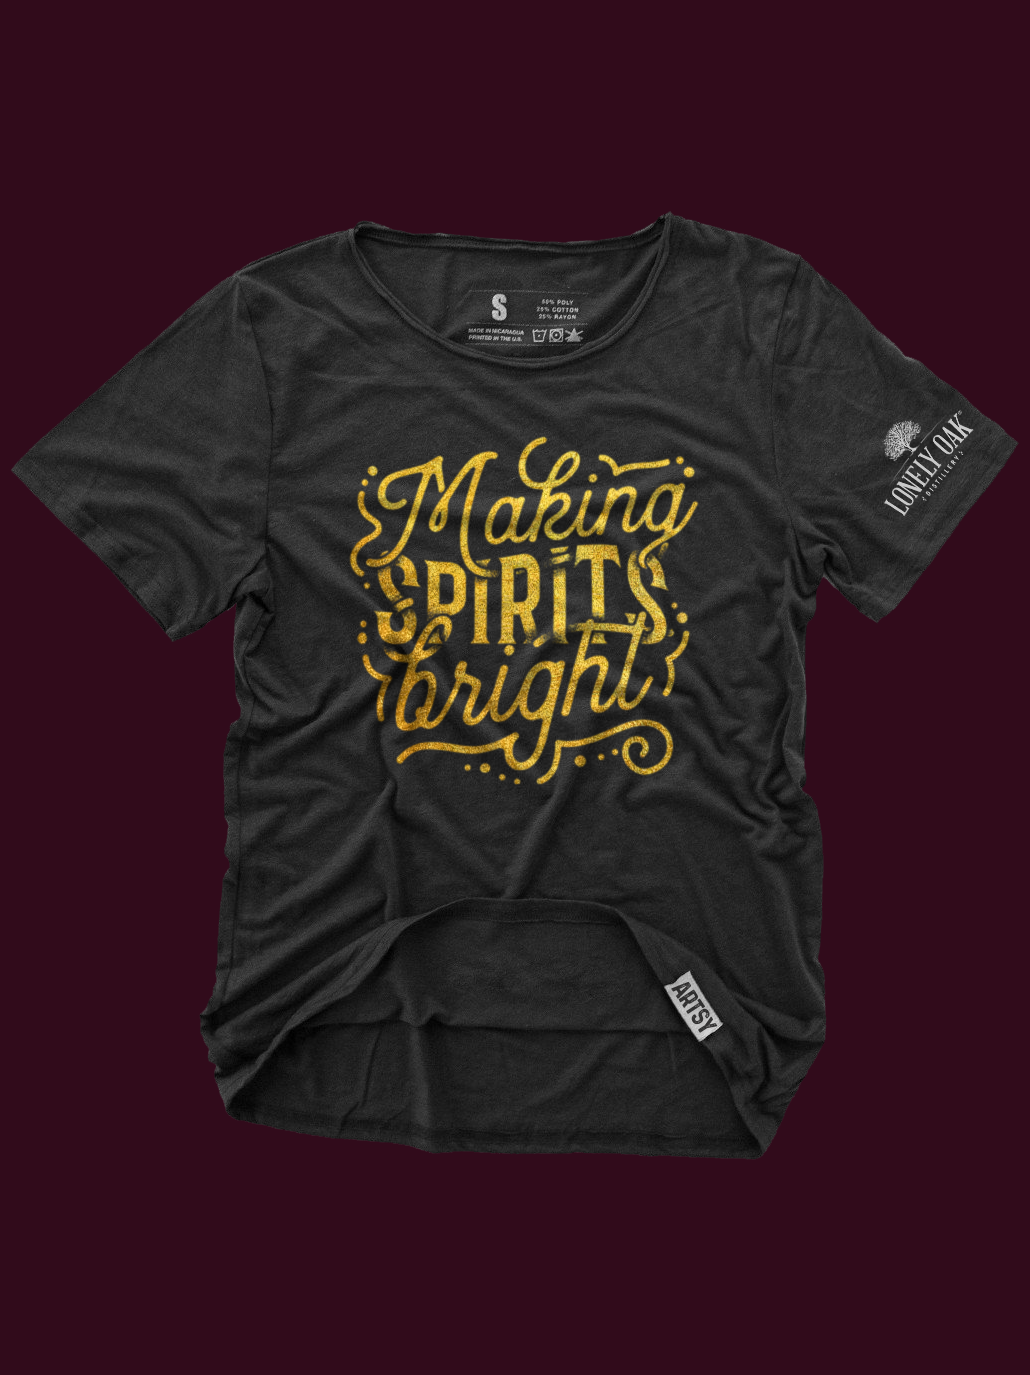 50 T Shirt Design Ideas That Won T Wear Out 99designs